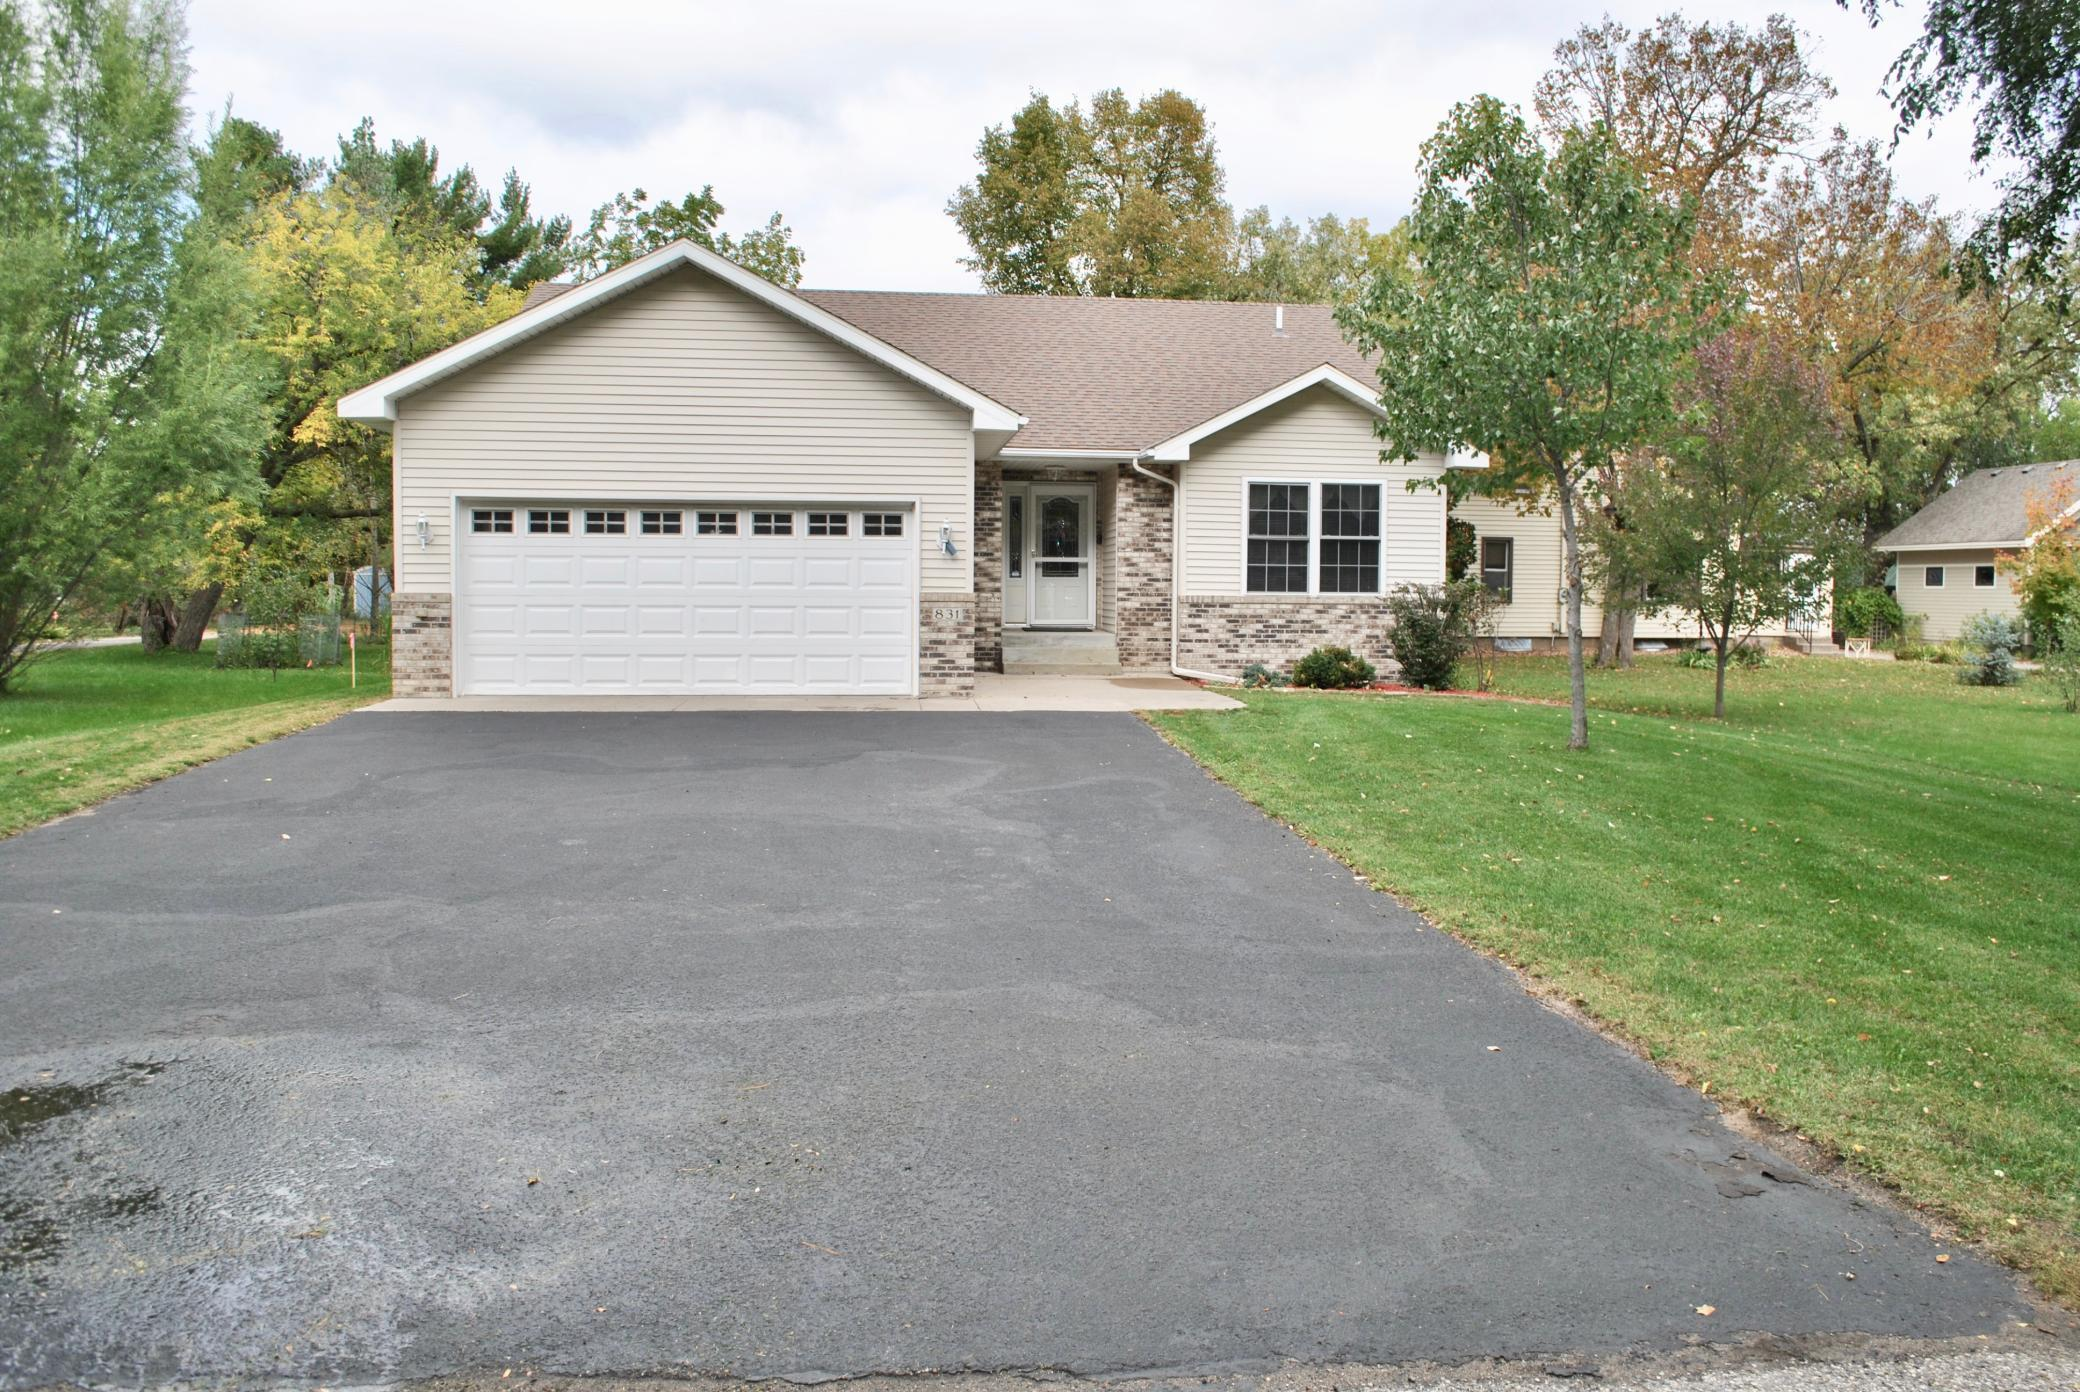 This Stunning 1 story 3 BR, 3 Baths offers quality and distinction throughout, with a spacious layout and impressive amenities! 3 panel doors, Large family room w bar setup for entertainment and plenty of storage space! Included is a maintenance free deck off the dinning area which flows into a large backyard w/storage shed. Located just a mile from the Country Club!